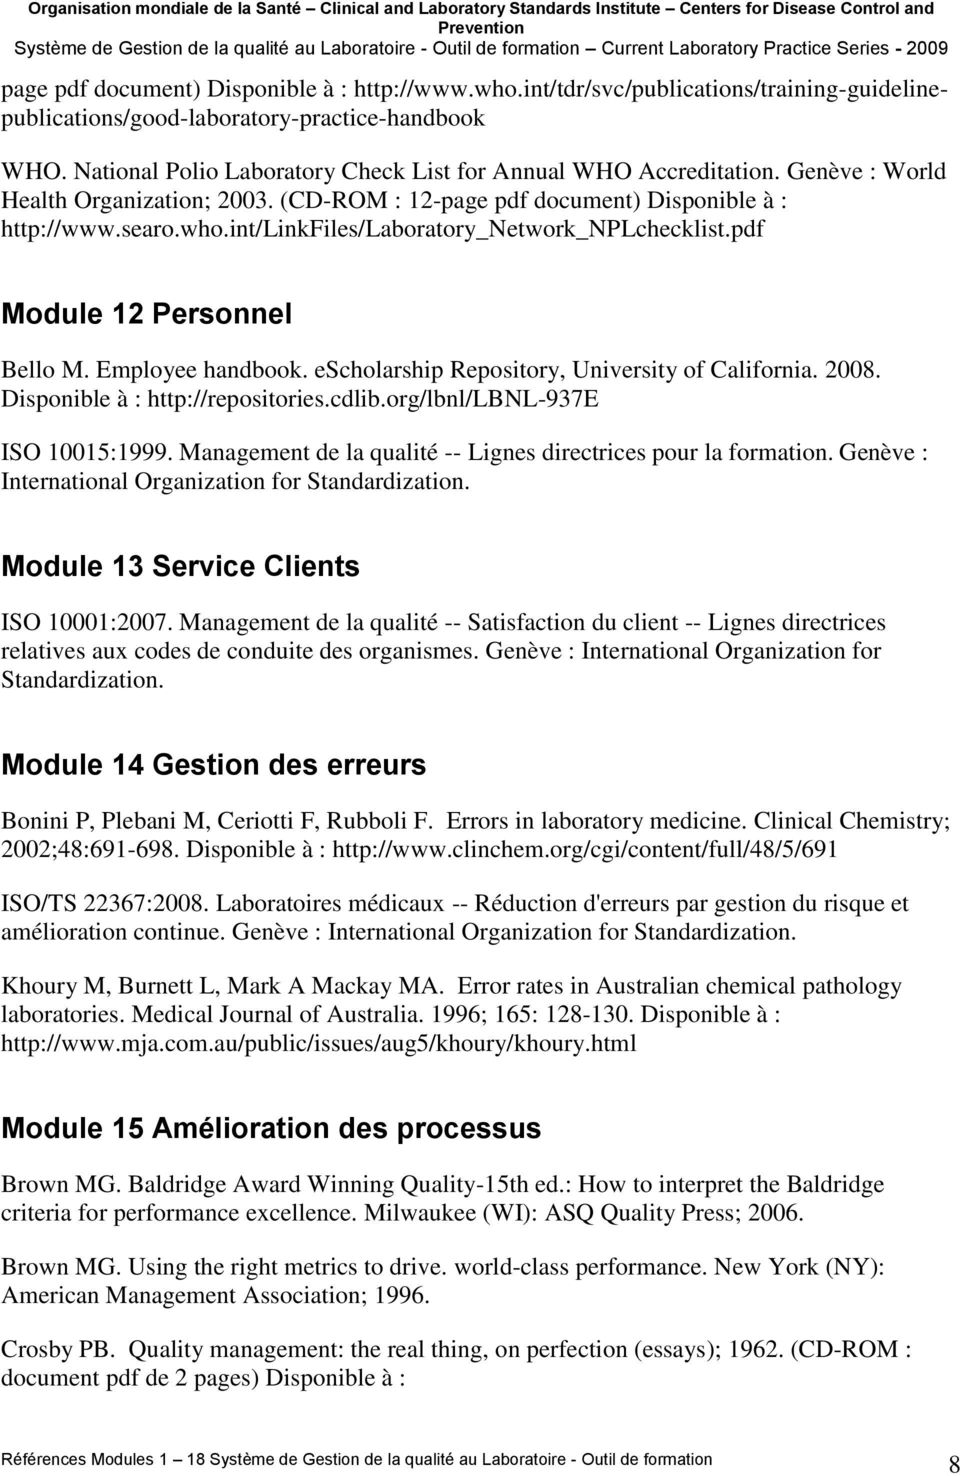 int/linkfiles/laboratory_network_nplchecklist.pdf Module 12 Personnel Bello M. Employee handbook. escholarship Repository, University of California. 2008. Disponible à : http://repositories.cdlib.